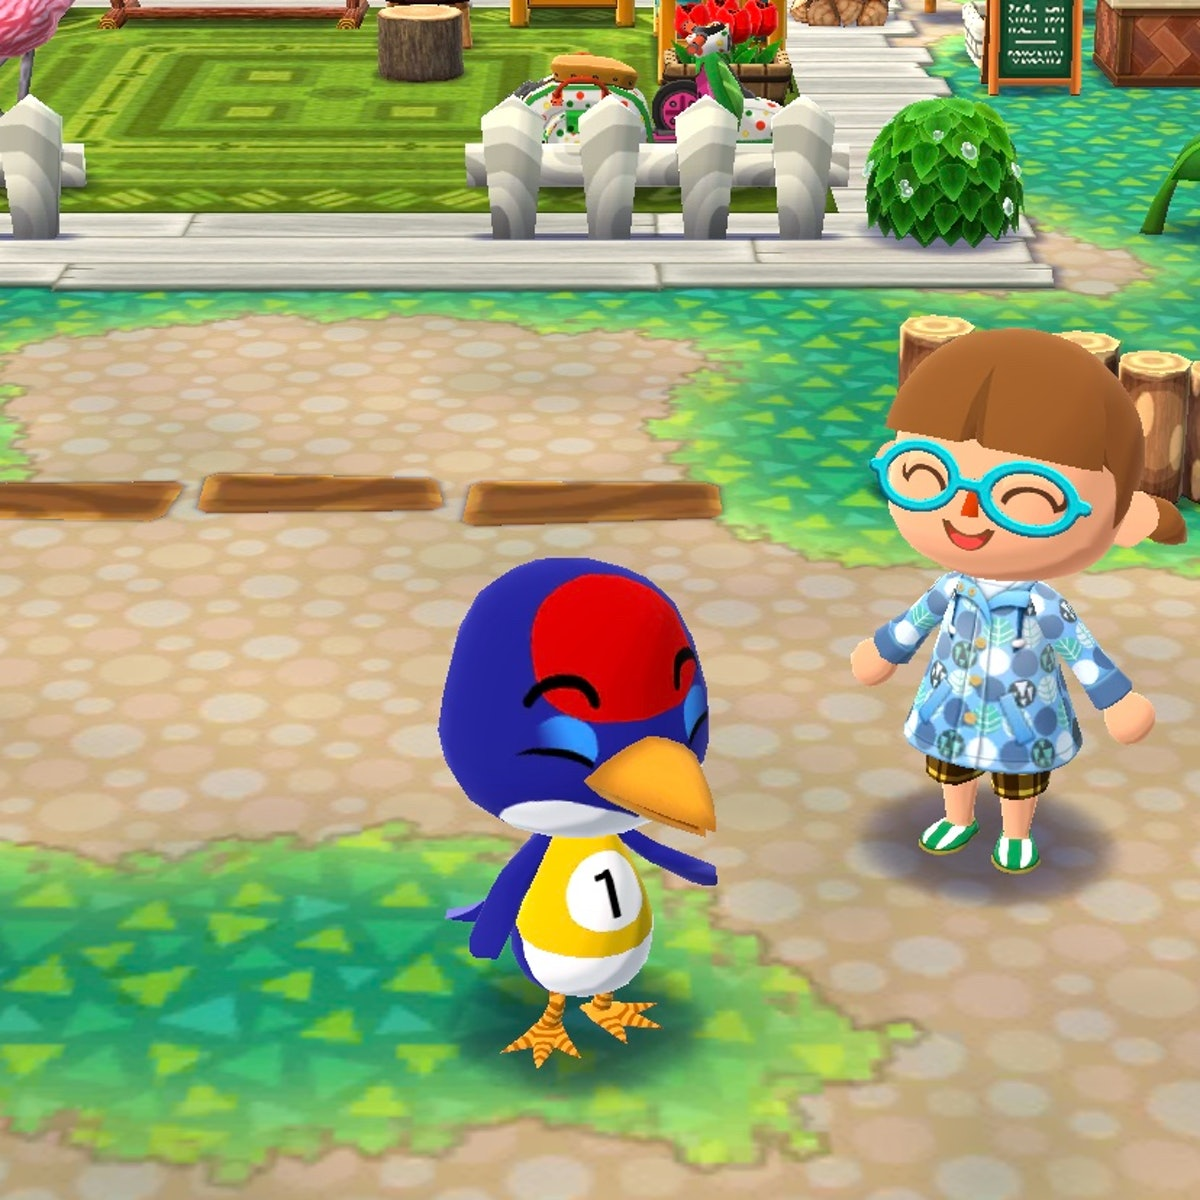 Jay from 'Animal Crossing' smiles while wearing a sporty shirt in the video game.